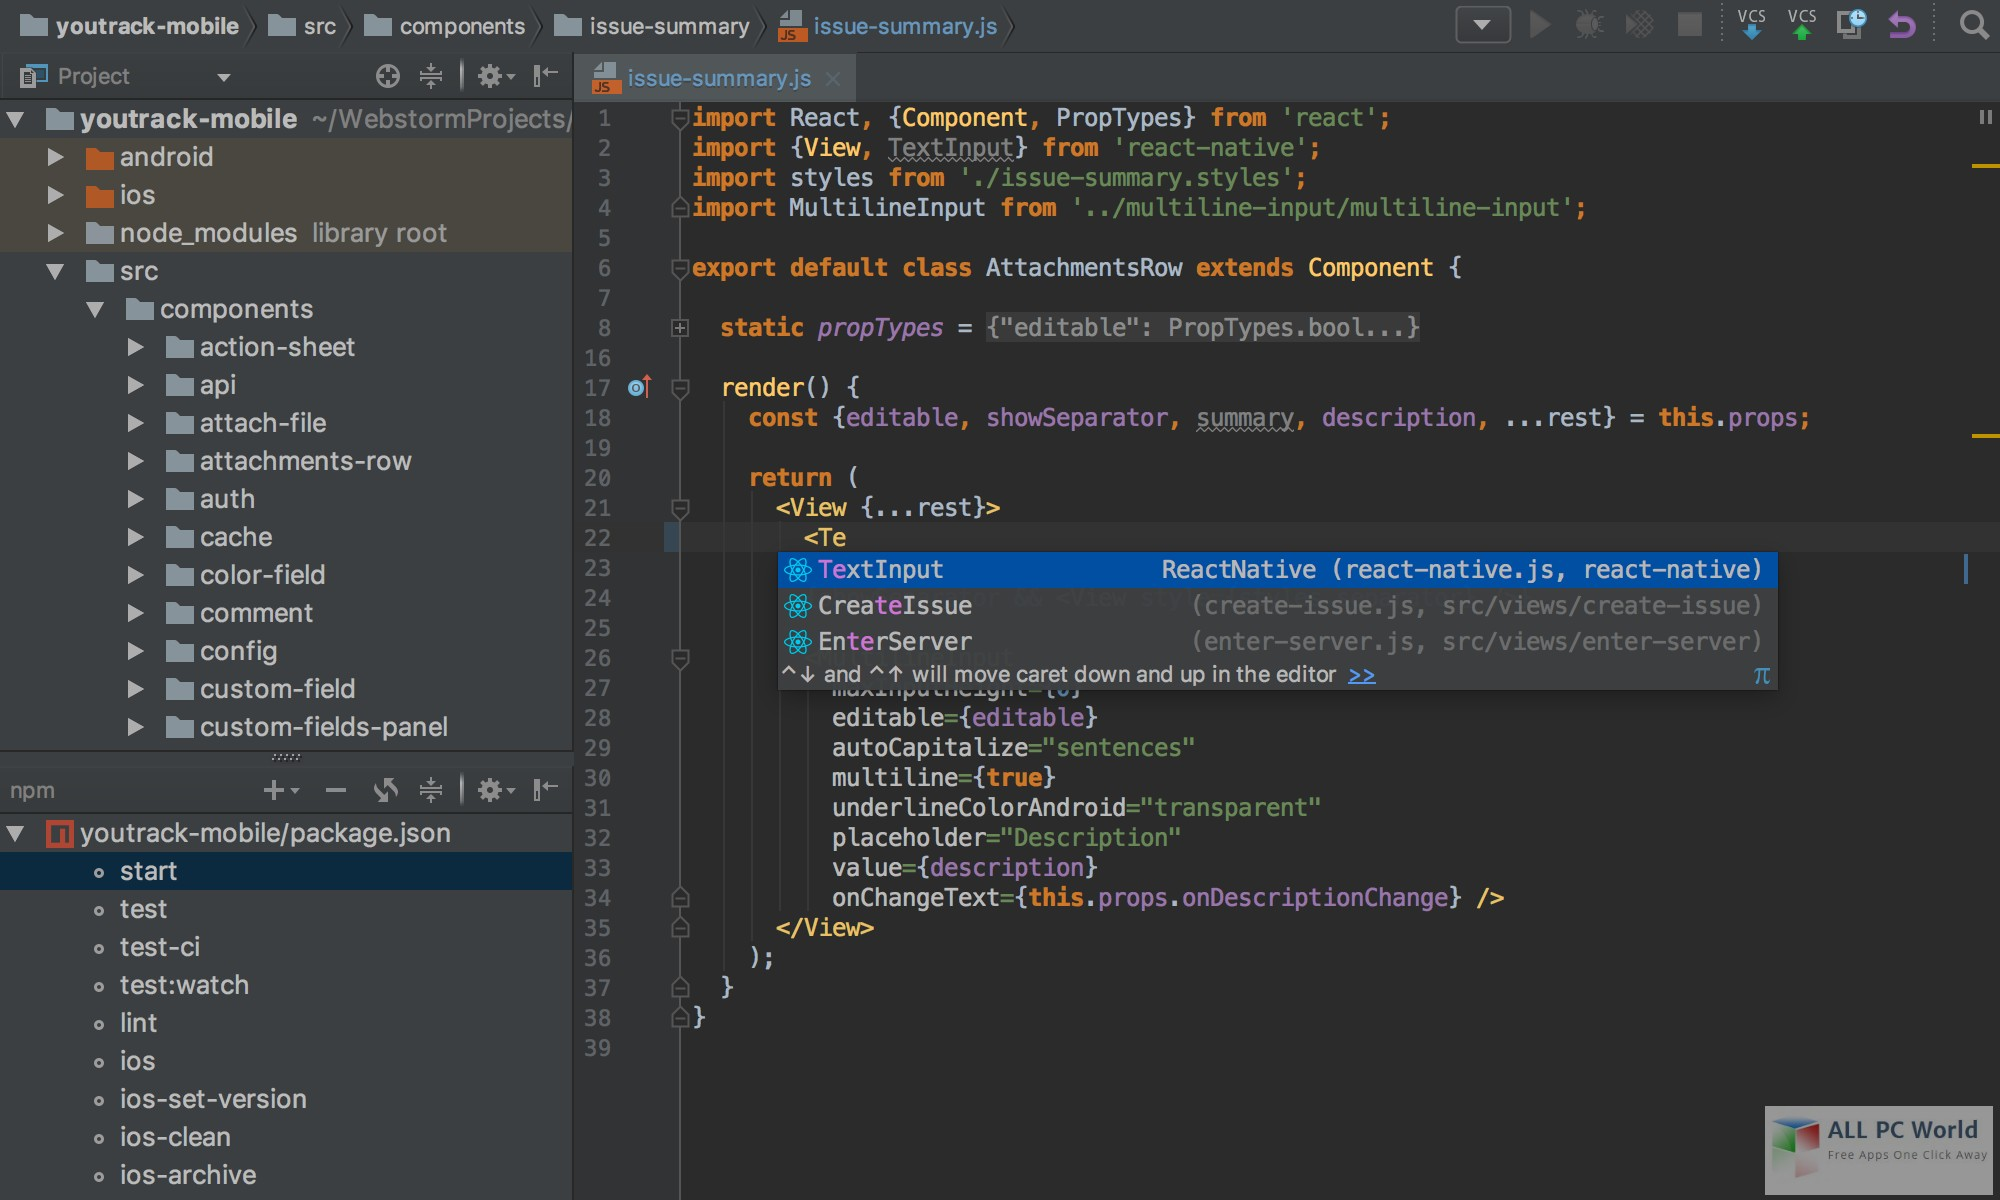 JetBrains WebStorm 2019